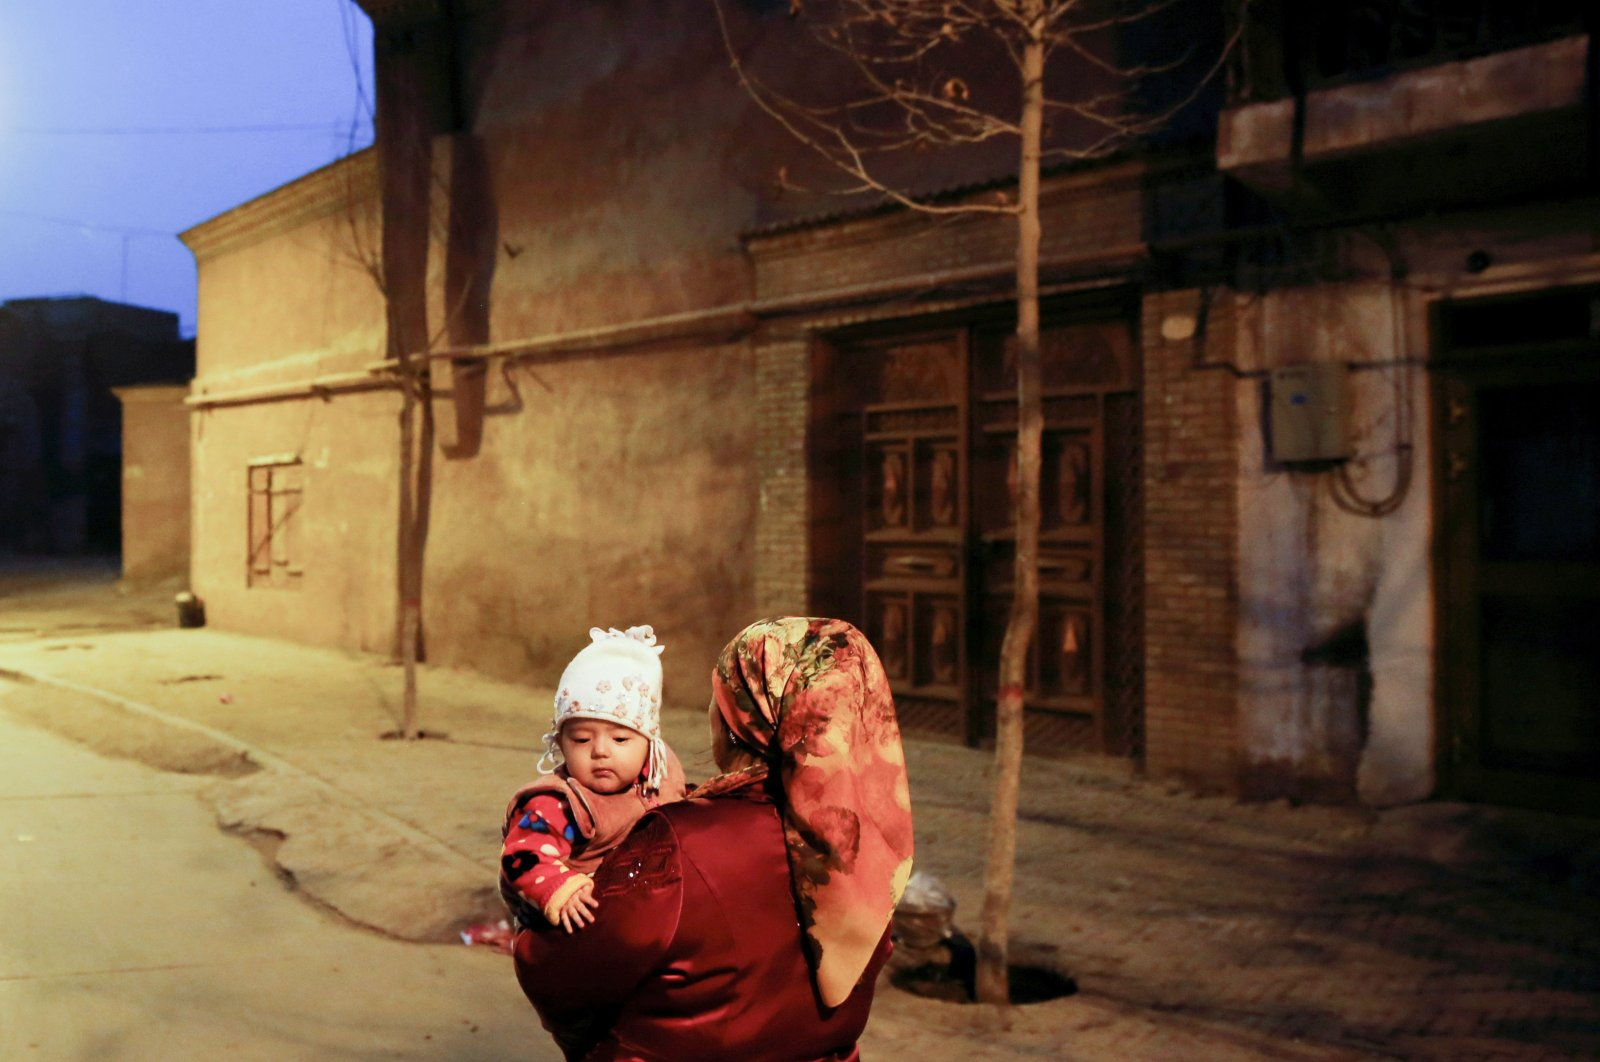 A woman carries a child at night in the old town of Kashgar, Xinjiang Uighur Autonomous Region, China, March 23, 2017. (Reuters Photo)